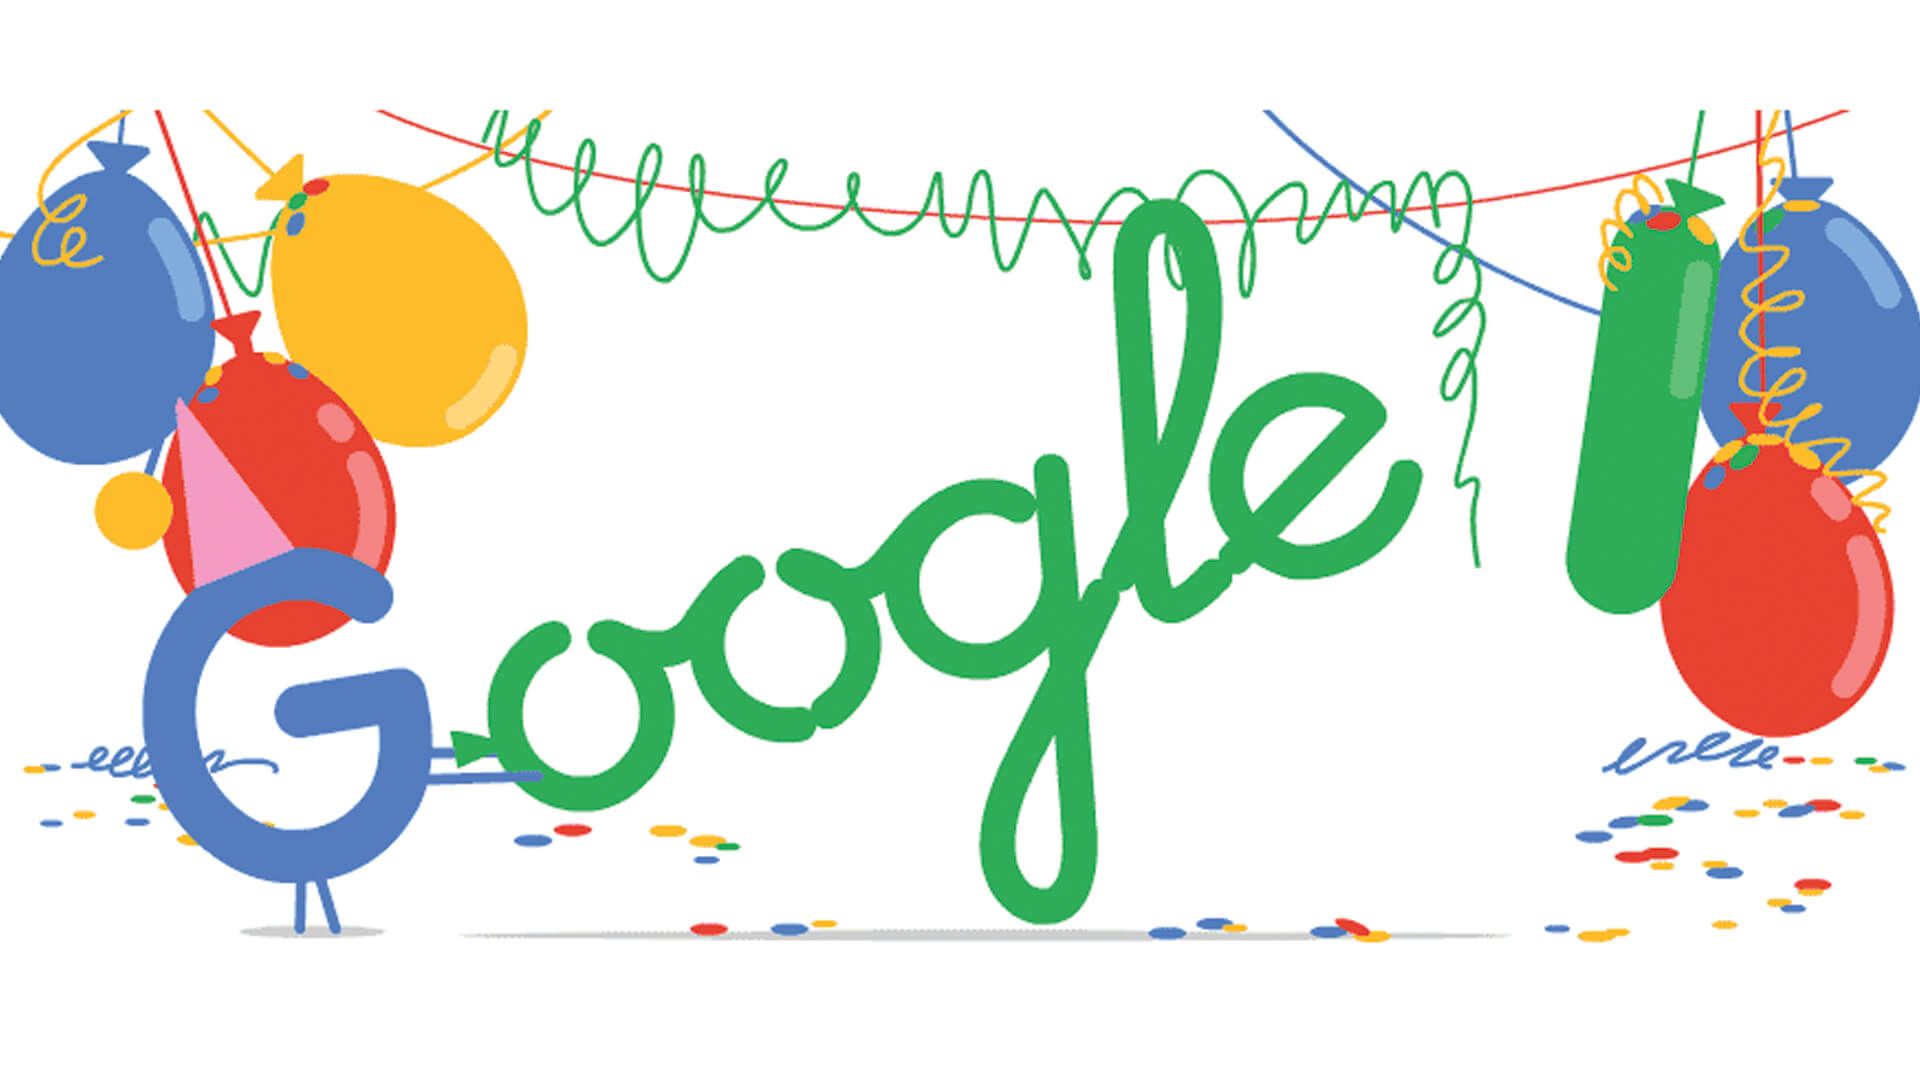 Google Celebrates 20th Anniversary: Revealing It's Most Popular Searches and More